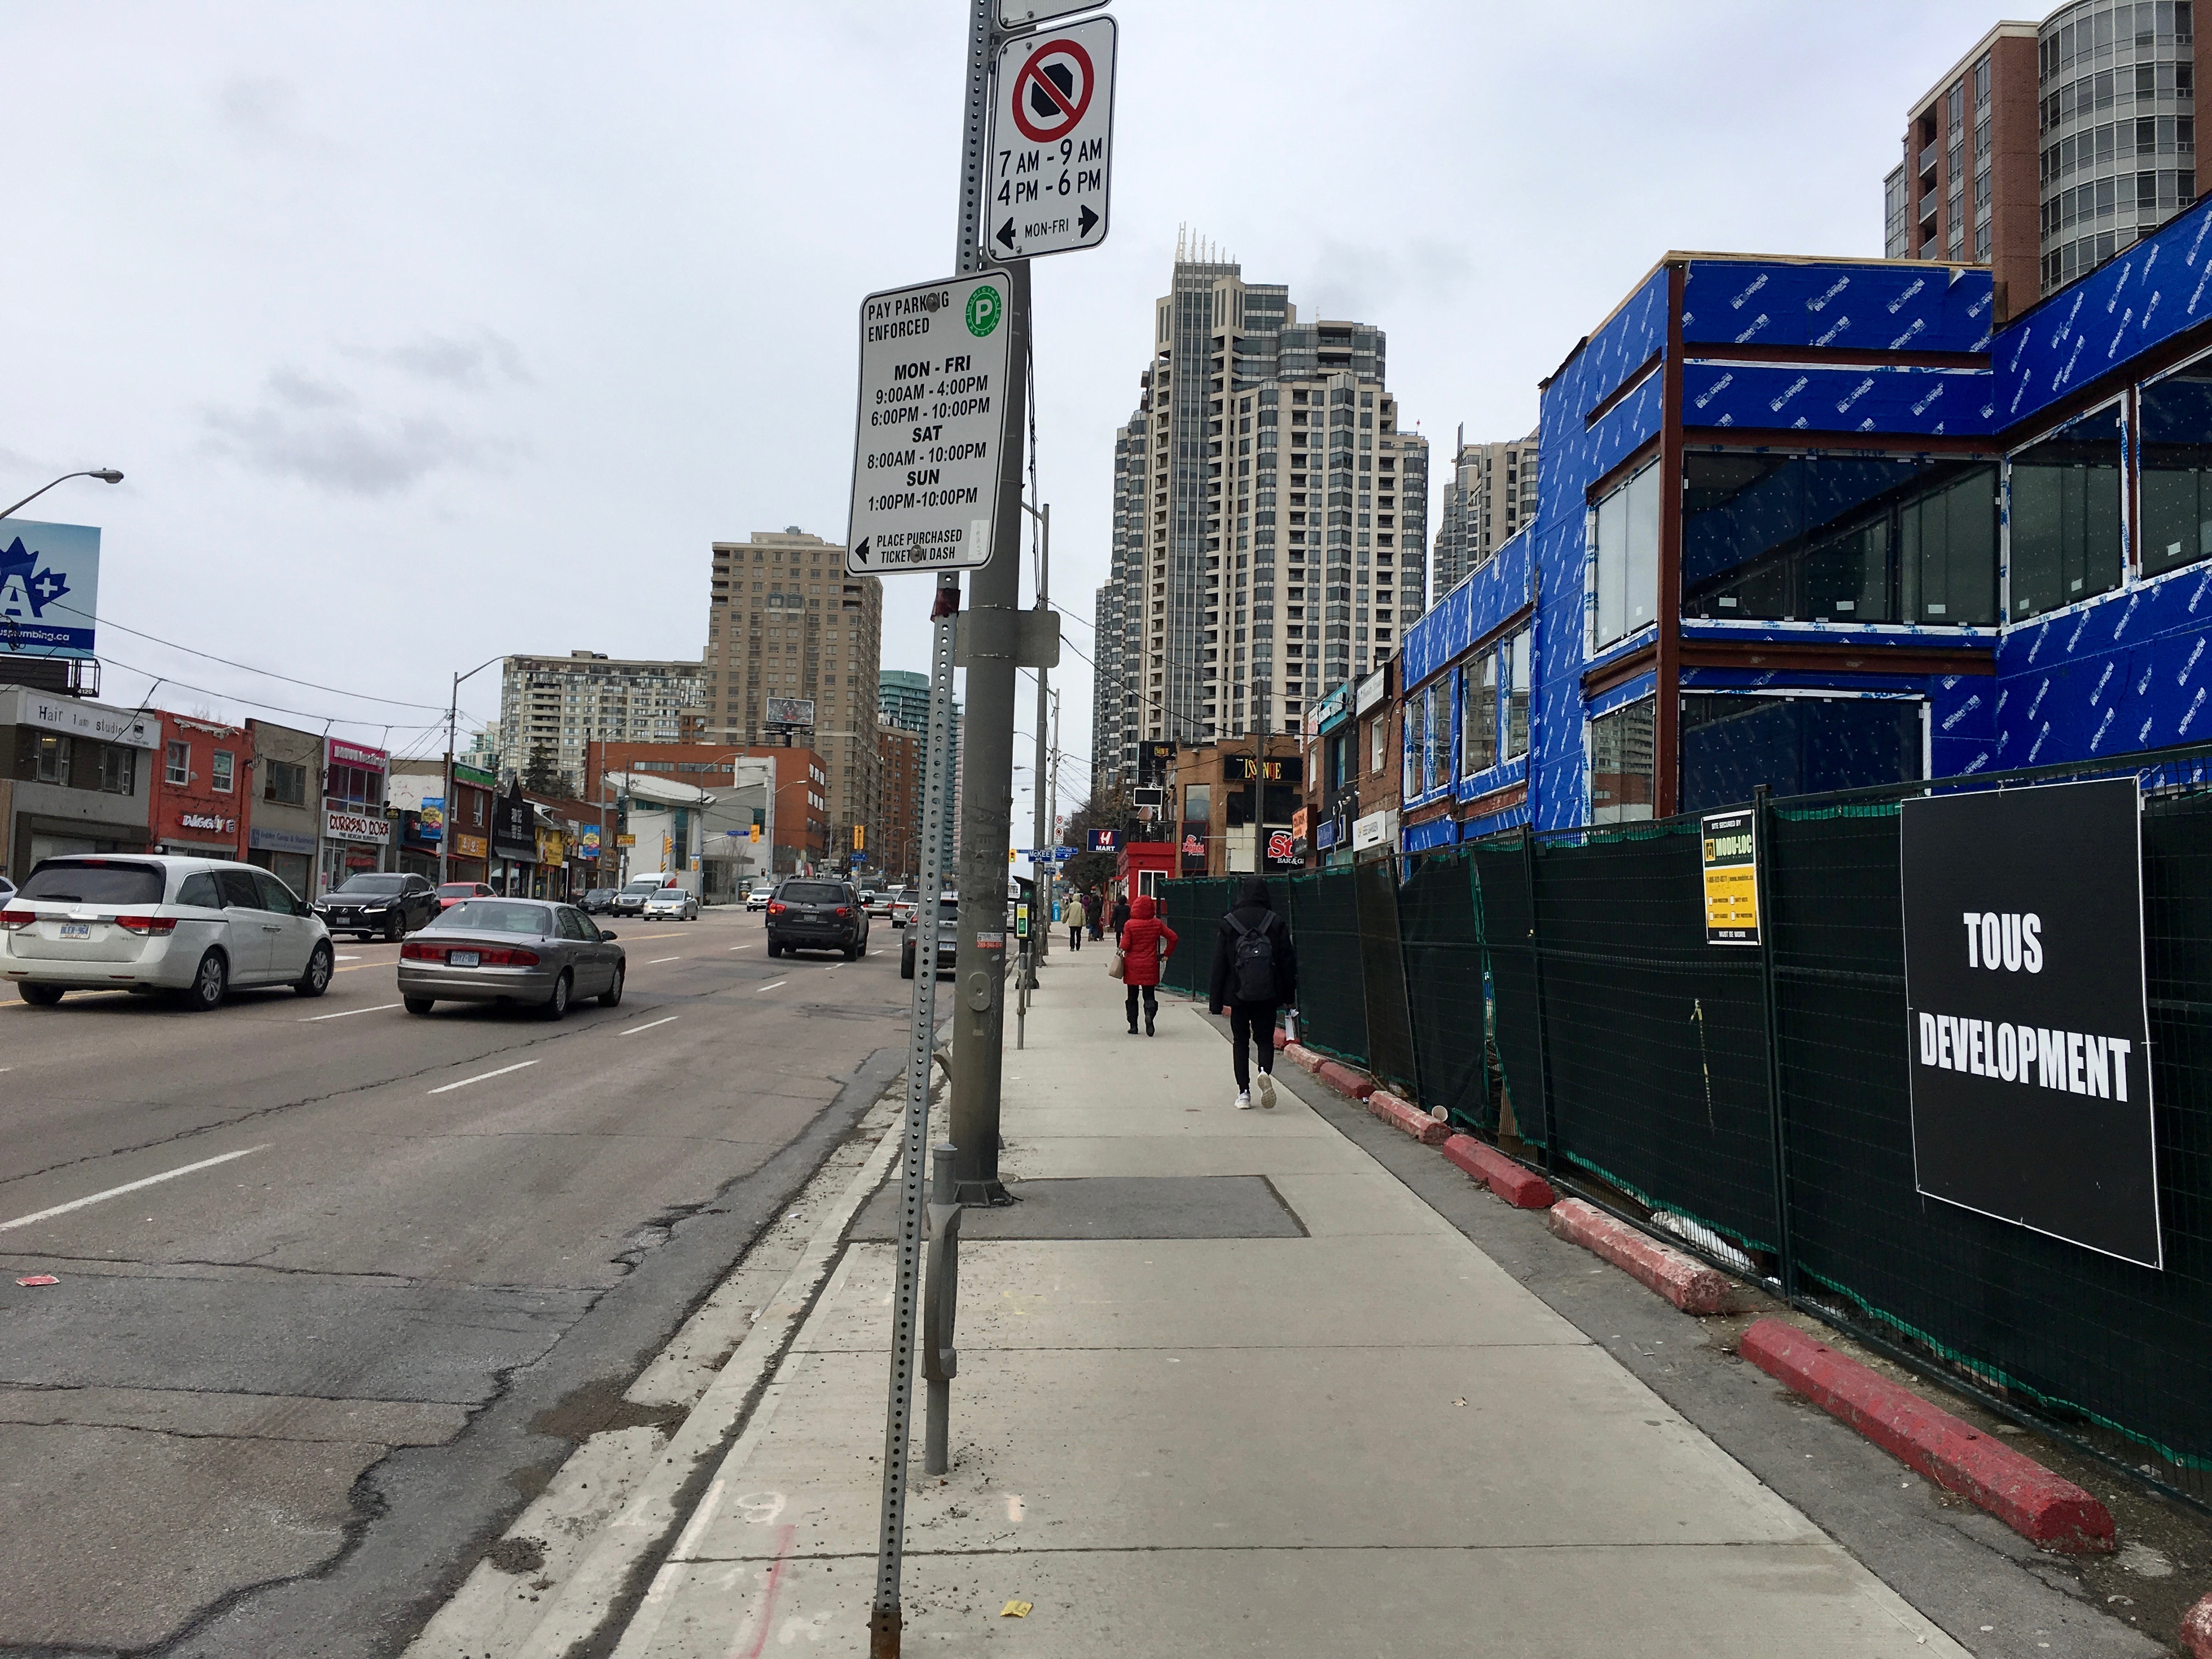 2:31 p.m., March 2, 2018. Development borders at the edge of this sidewalk on Yonge Street, comparatively narrow to other parts of the strip.